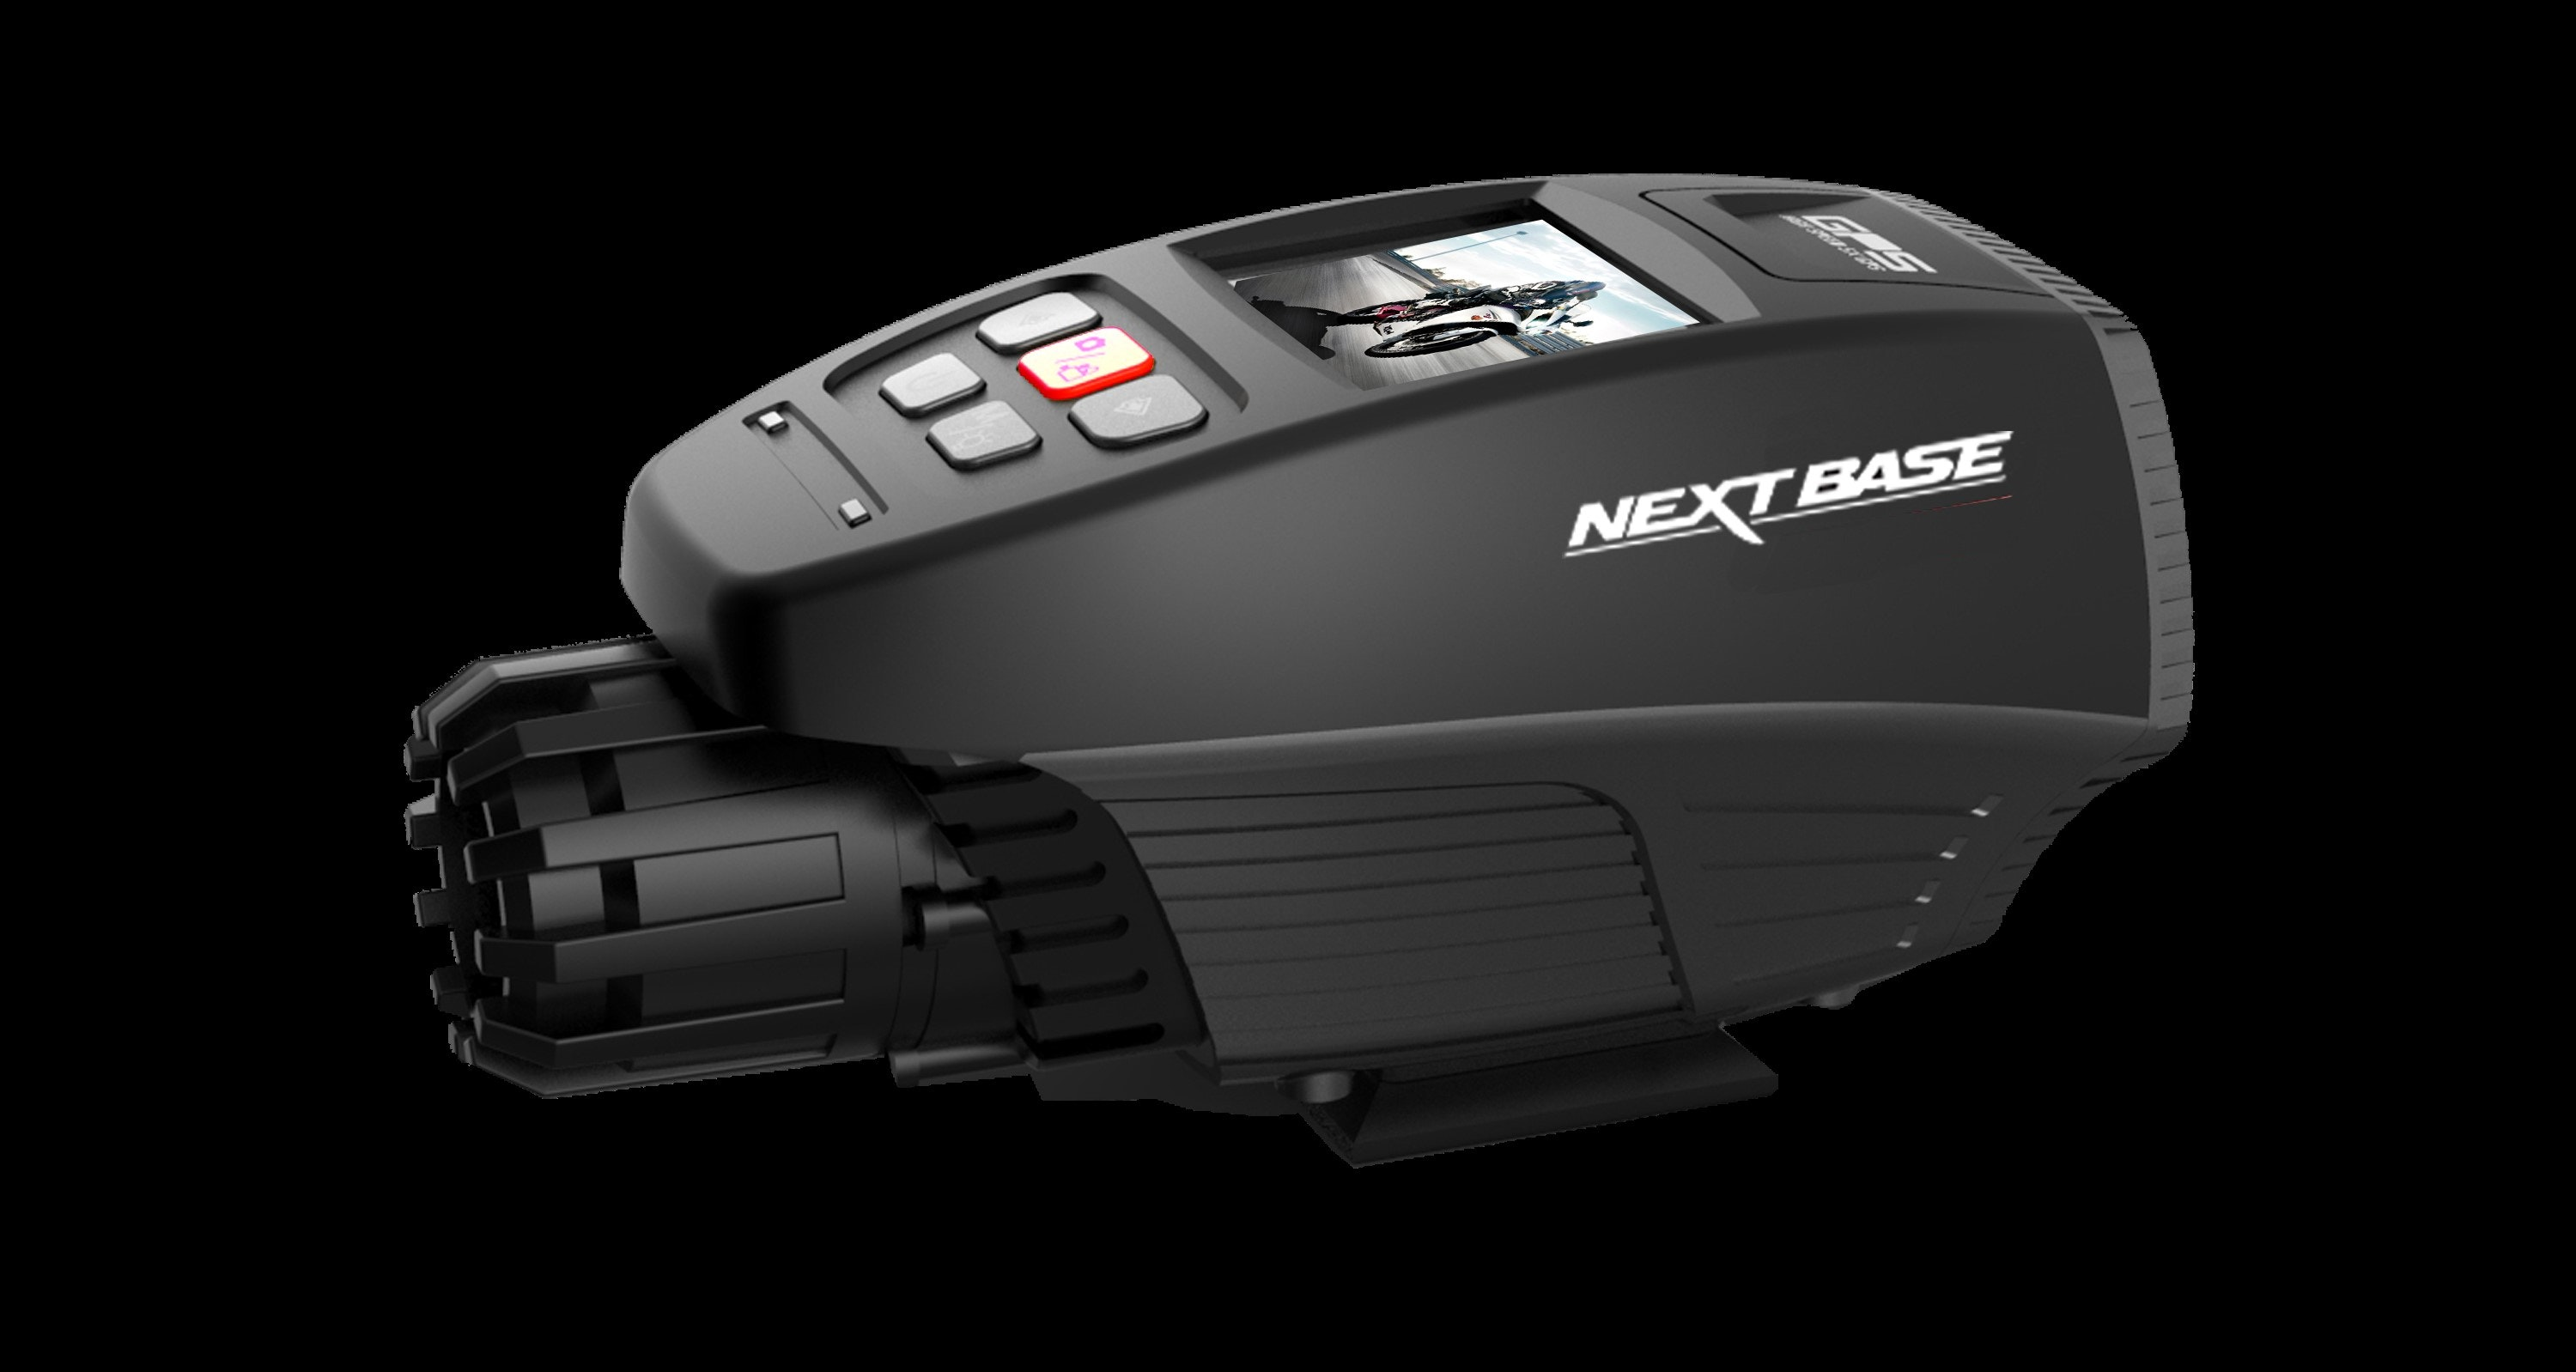 Win a dash cam for motorbikes, courtesy of Nextbase! sweepstakes